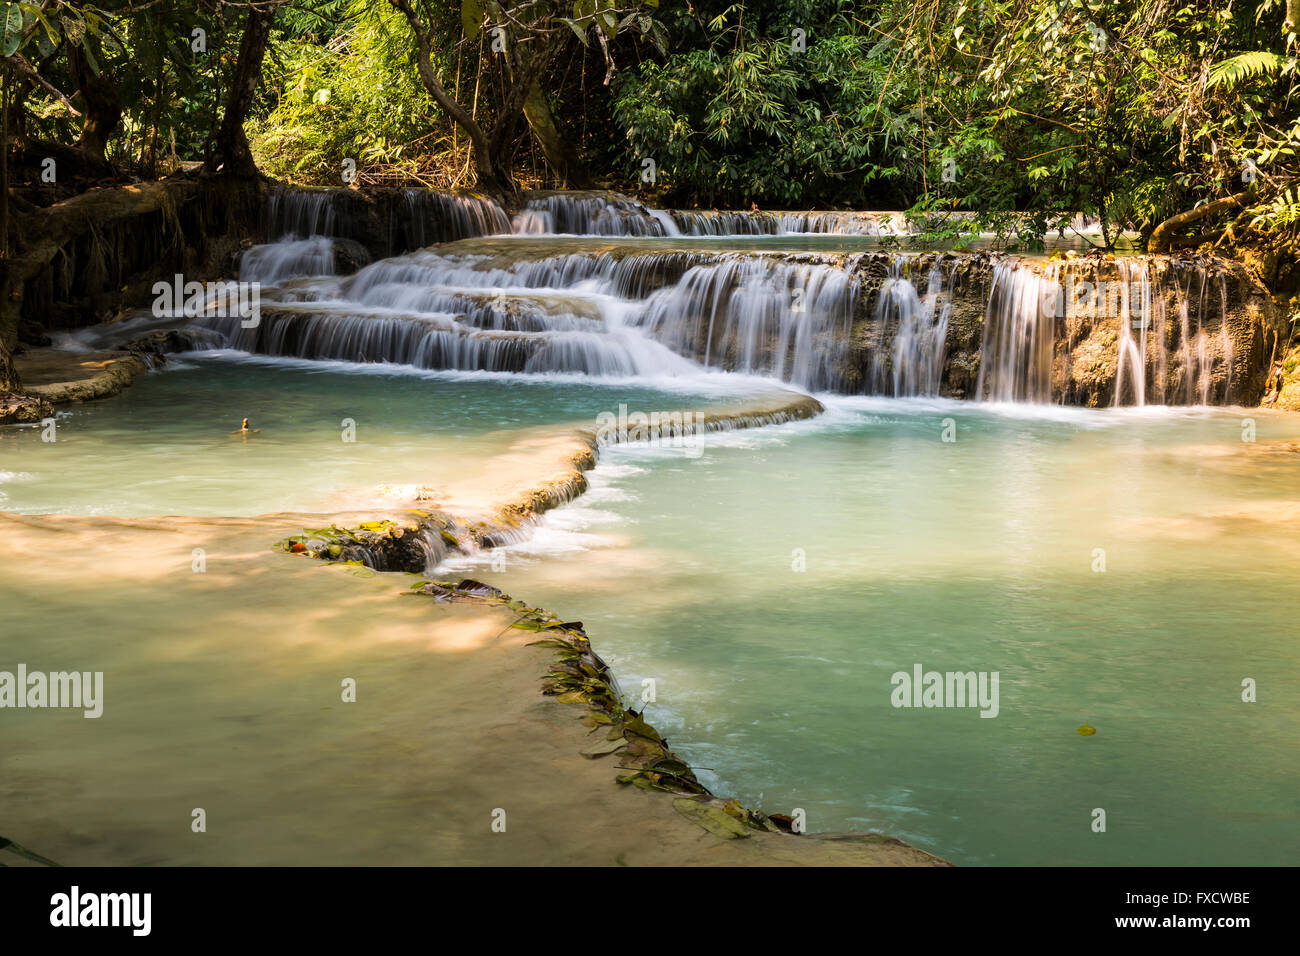 The beautiful Kuang Si Falls in Luang Prabang, Laos Stock Photo